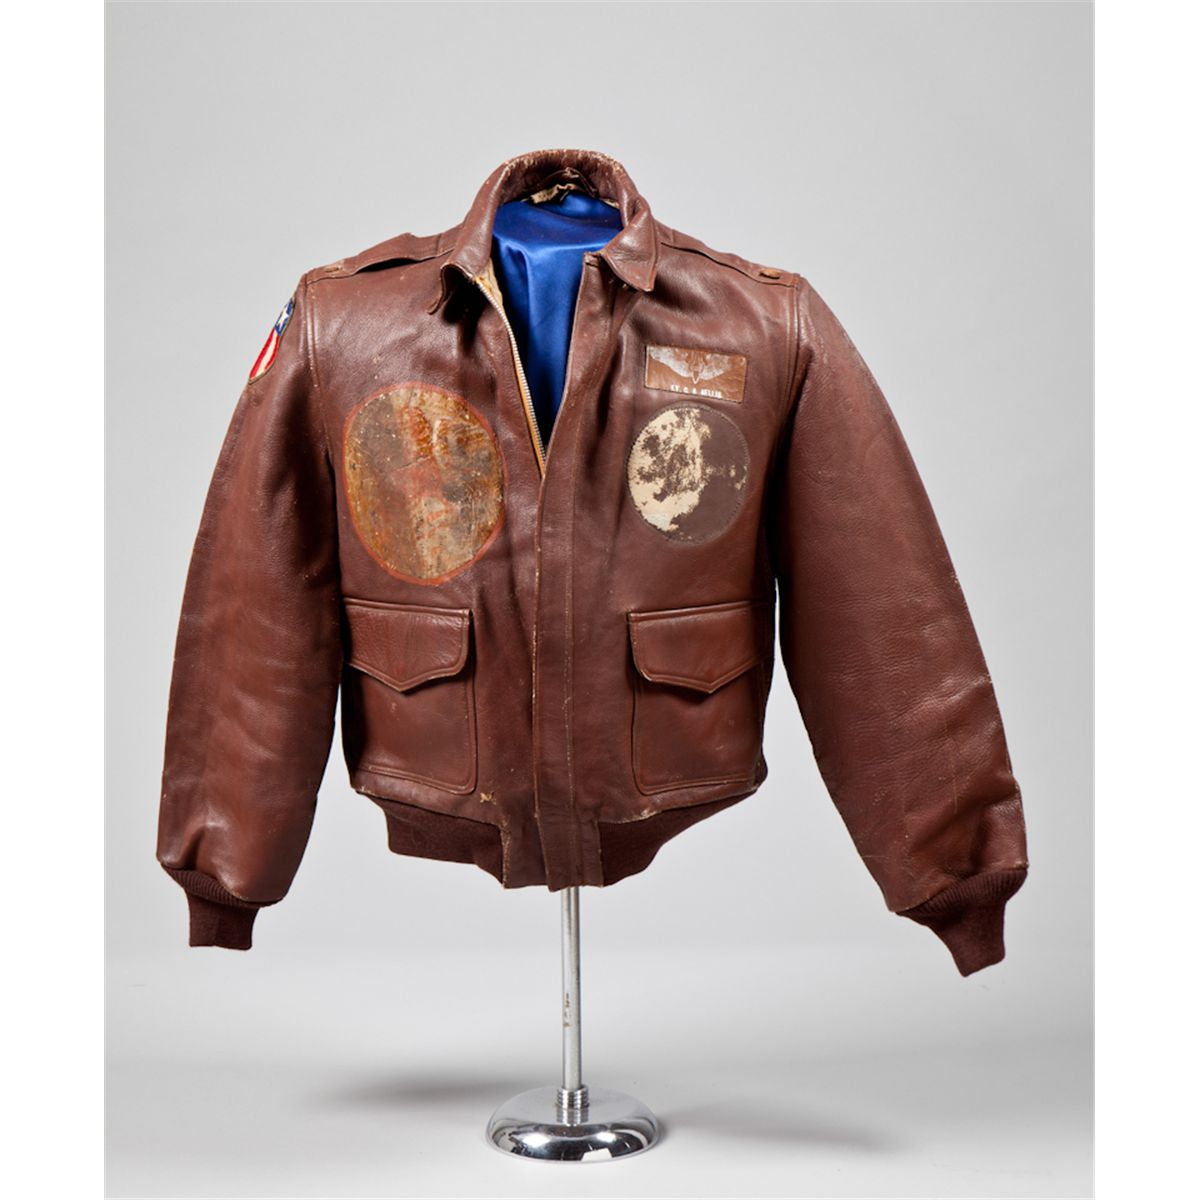 Named Australian Made WWII A-2 Flight Jacket